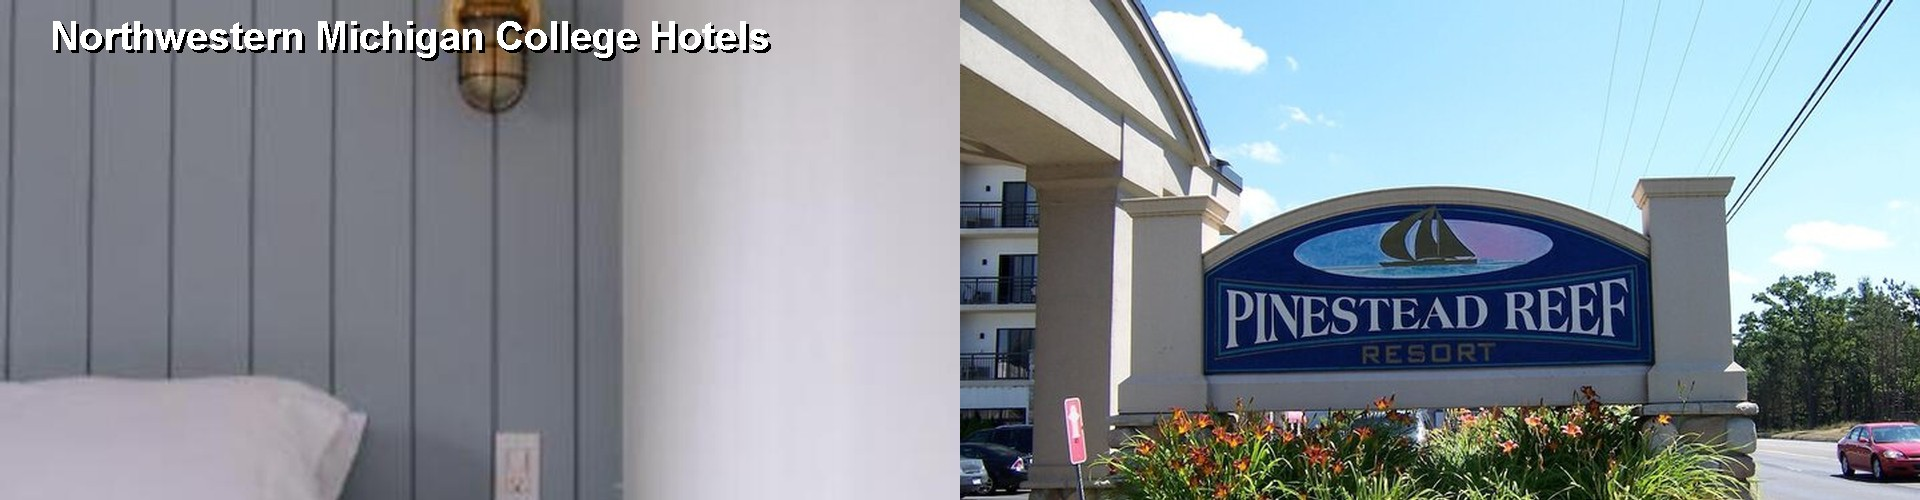 5 Best Hotels near Northwestern Michigan College